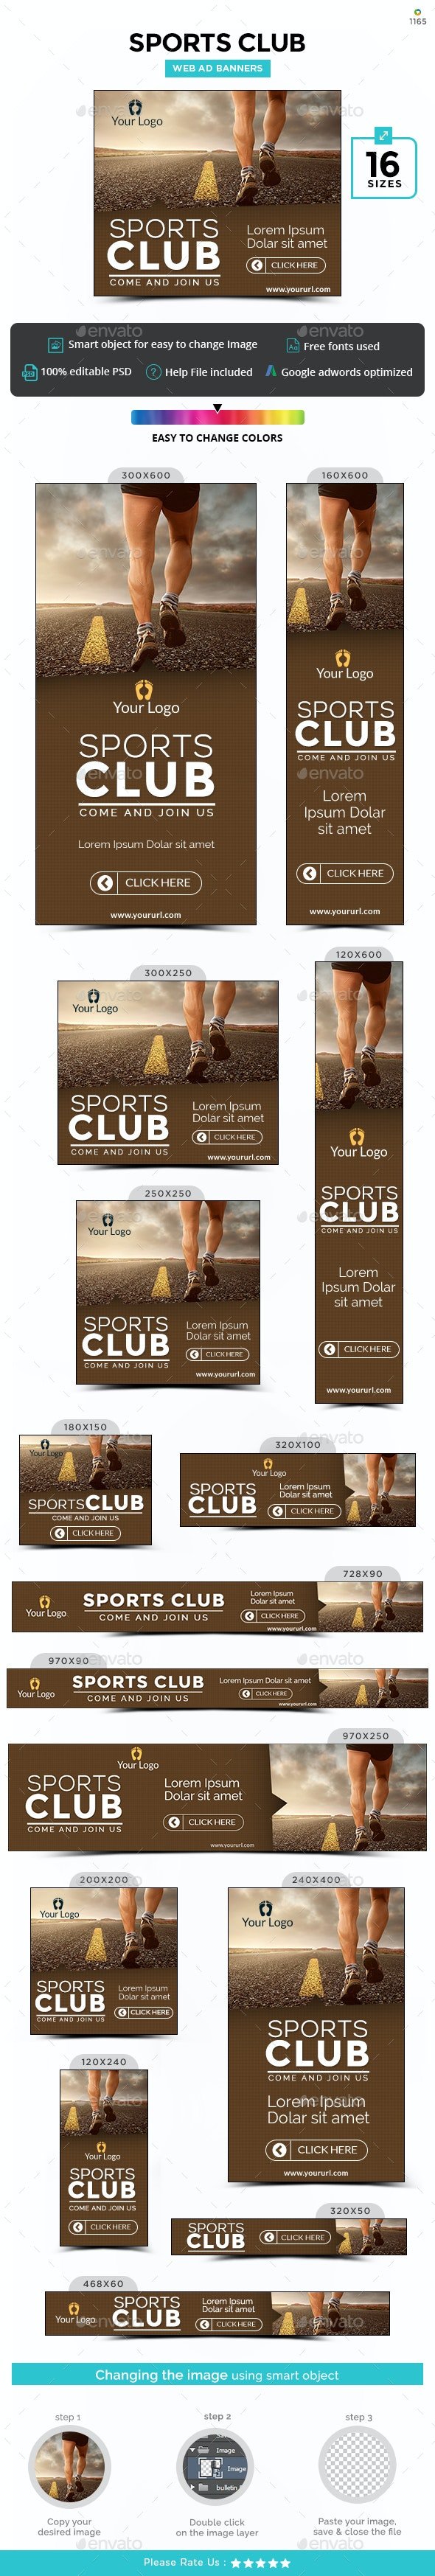 Sports Club Banners - Updated! - Banners & Ads Web Elements